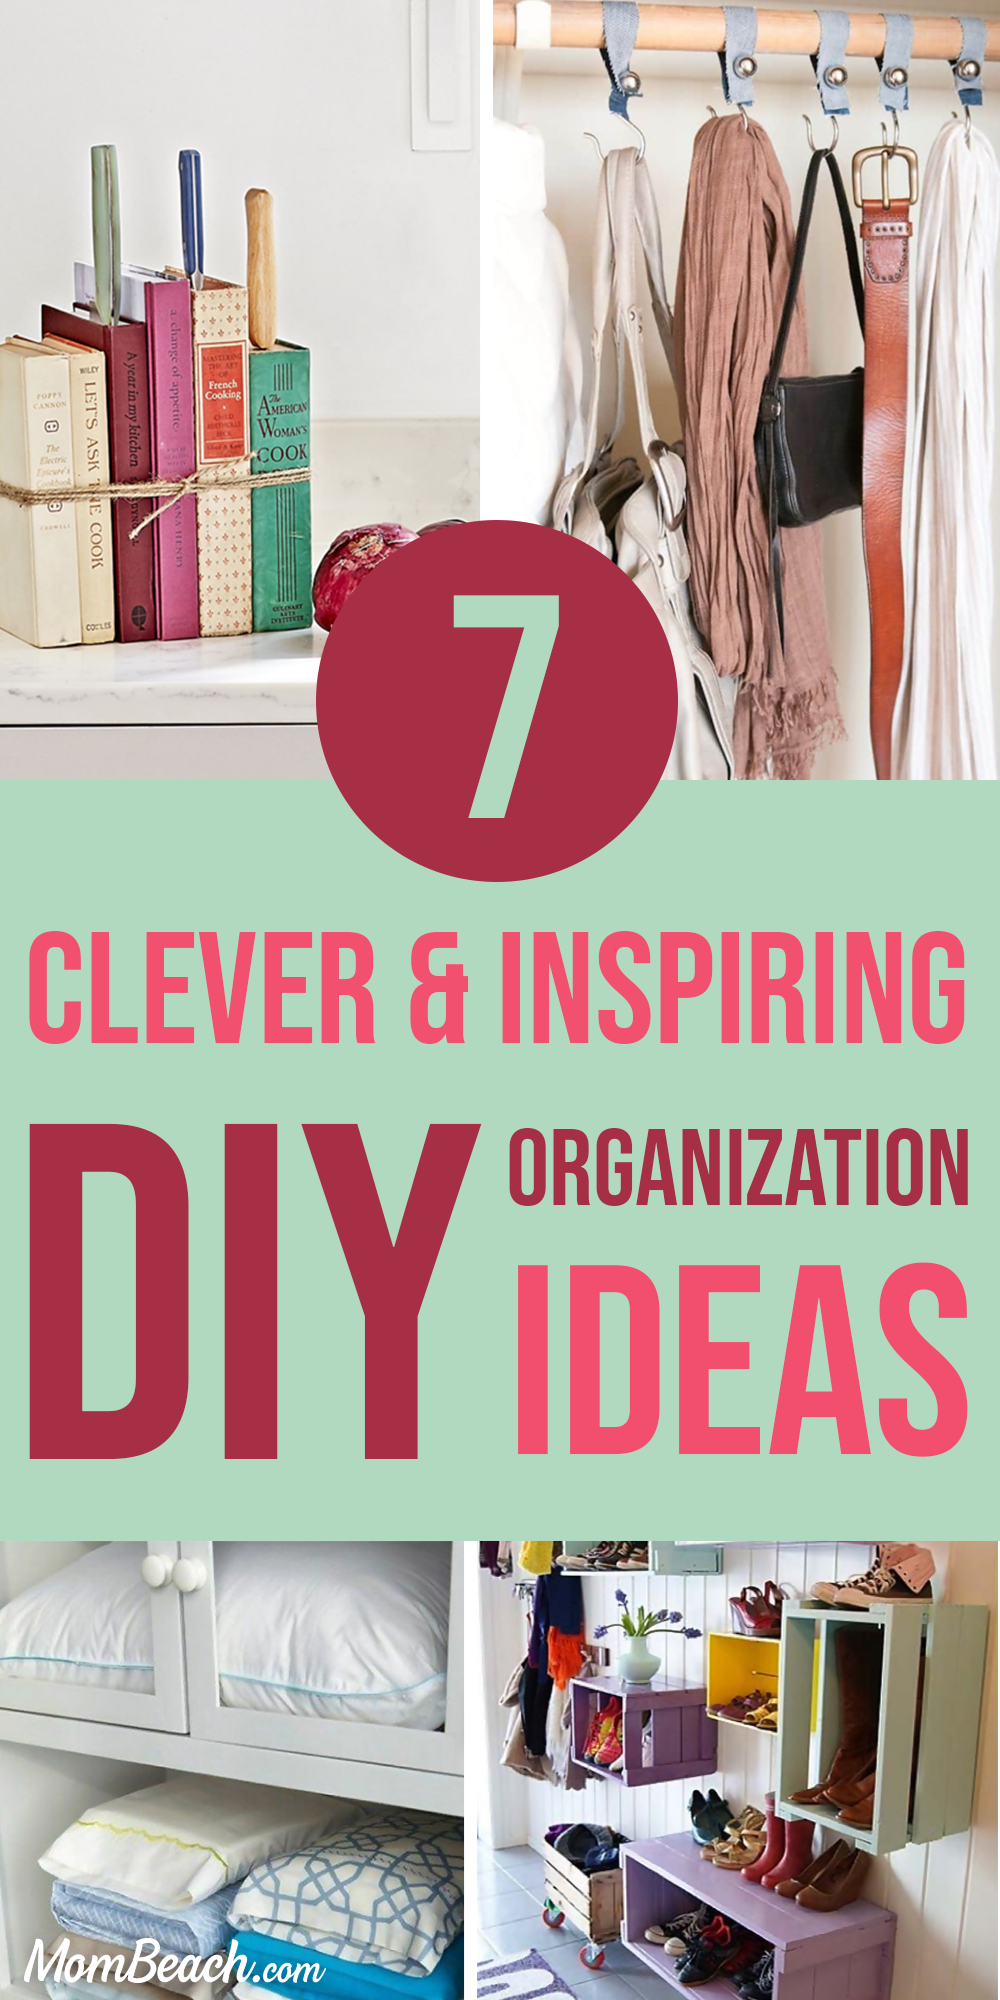 You won't believe these 7 clever and inspiring DIY organization ideas! Save money by DIY instead of spend hundreds at the Container Store. There are so many dollar store organization ideas that you will be shook! There are DIY organization ideas for the bedroom, for small spaces, for teens, bathrooms, the kitchen and the closet. There are even hacks for the apartment too. #diyorganization #diyorganizationideas #diyorganizationhacks #diyorganizationforsmallspaces #diyorganizationdollarstore